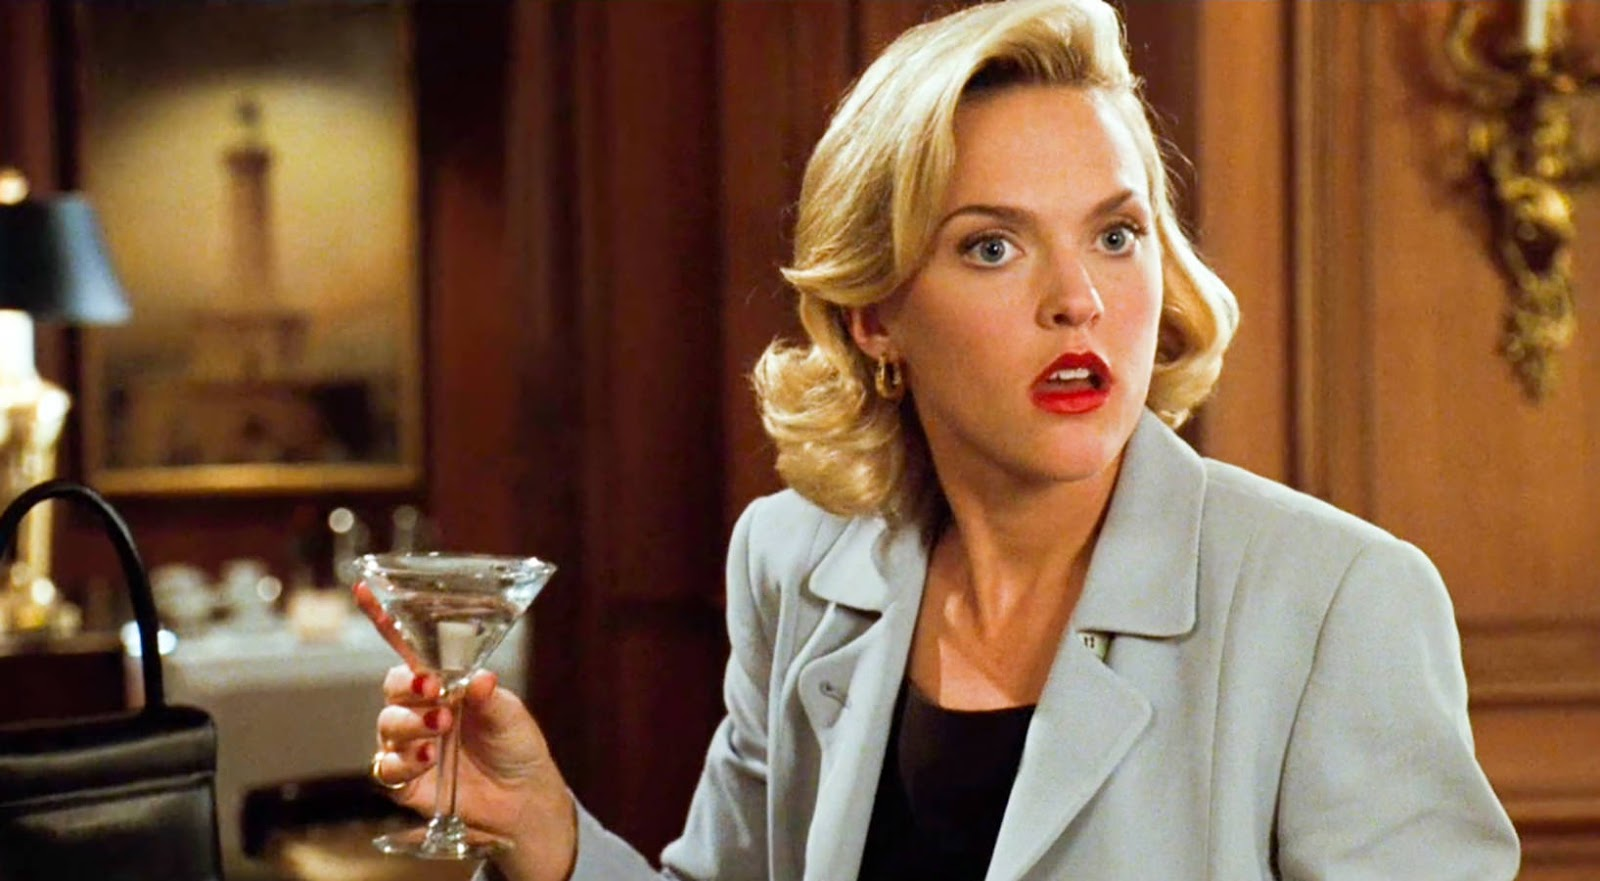 hero, The Parent Trap, meredith blake, blonde, drink, alcohol, shock, surprise, Cocktail, business